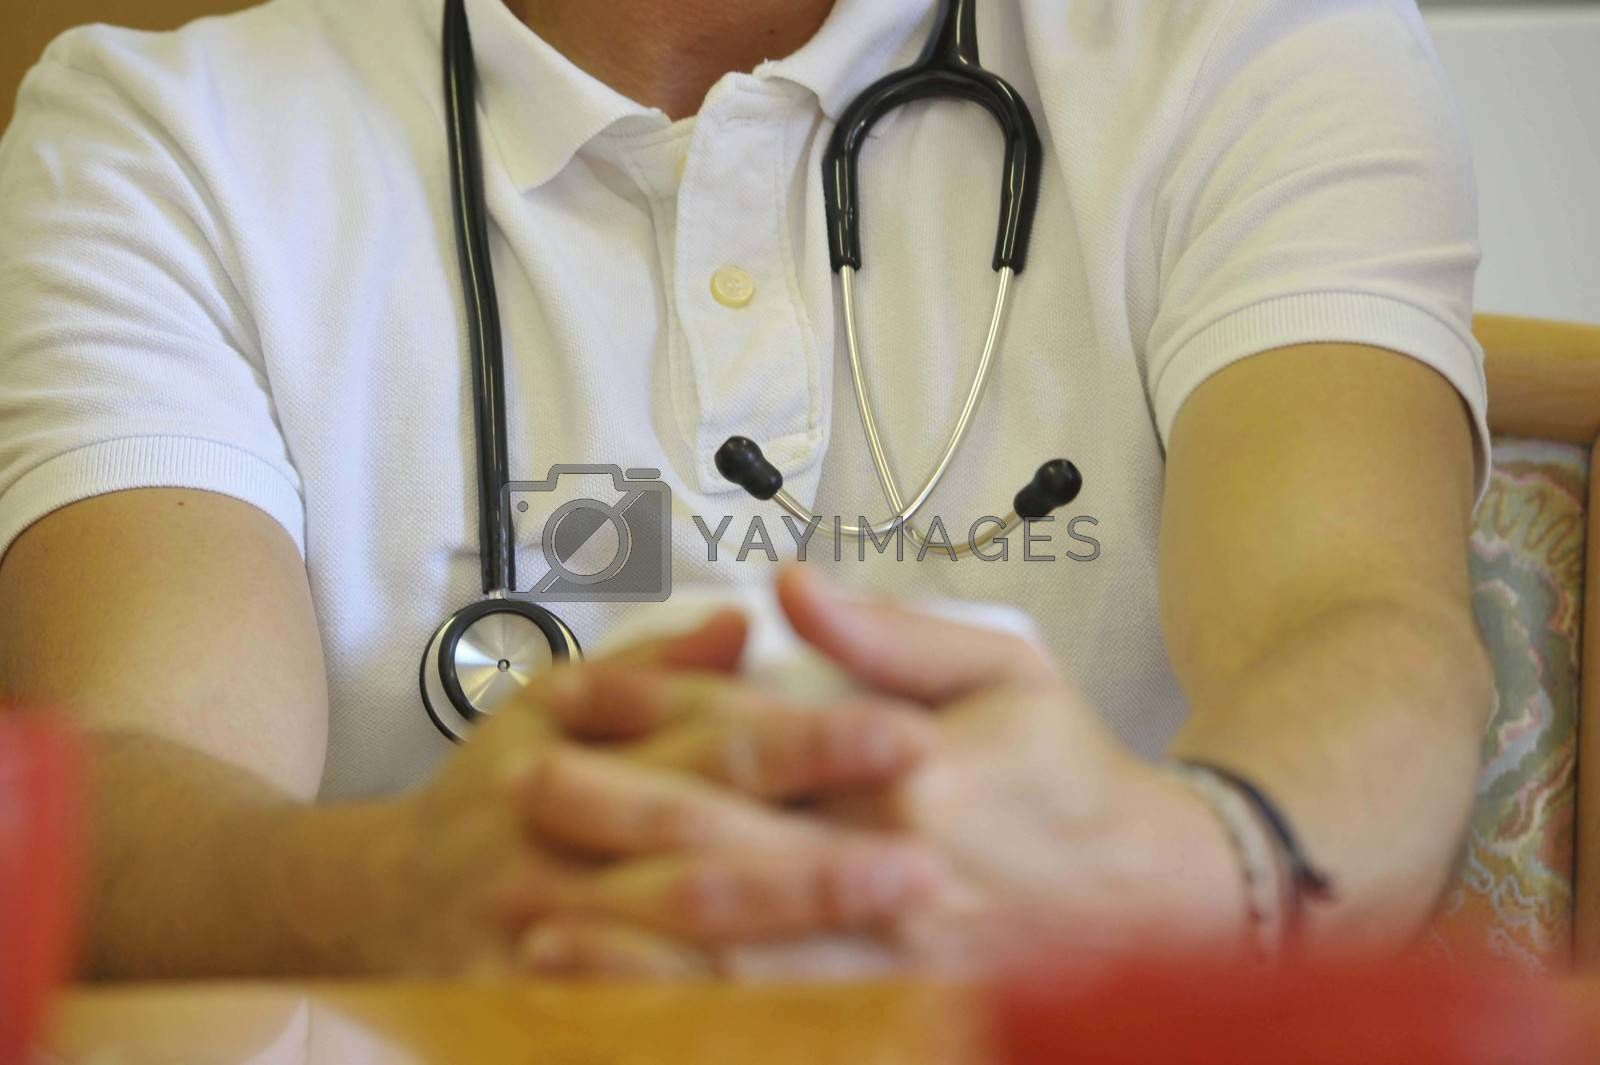 doctor in white shirt wearing a stethoscope around his neck